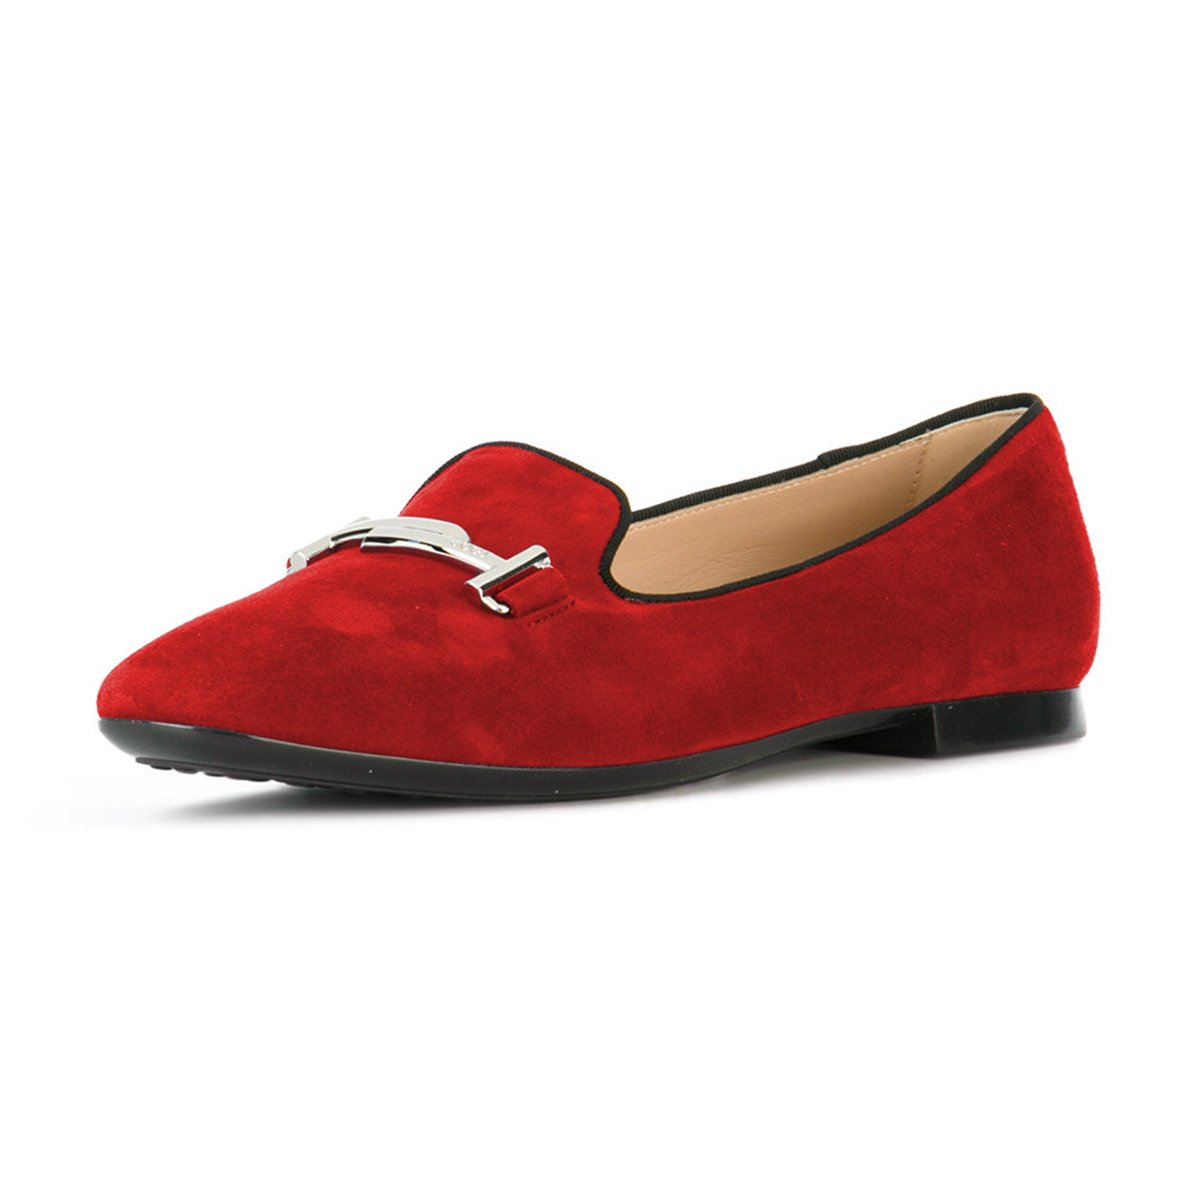 XYD Comfortable Low Heel Slip On Suede Flats Pointed Toe Ballet Loafer Dress Shoes for Women B0794ZNC59 13 B(M) US|Red